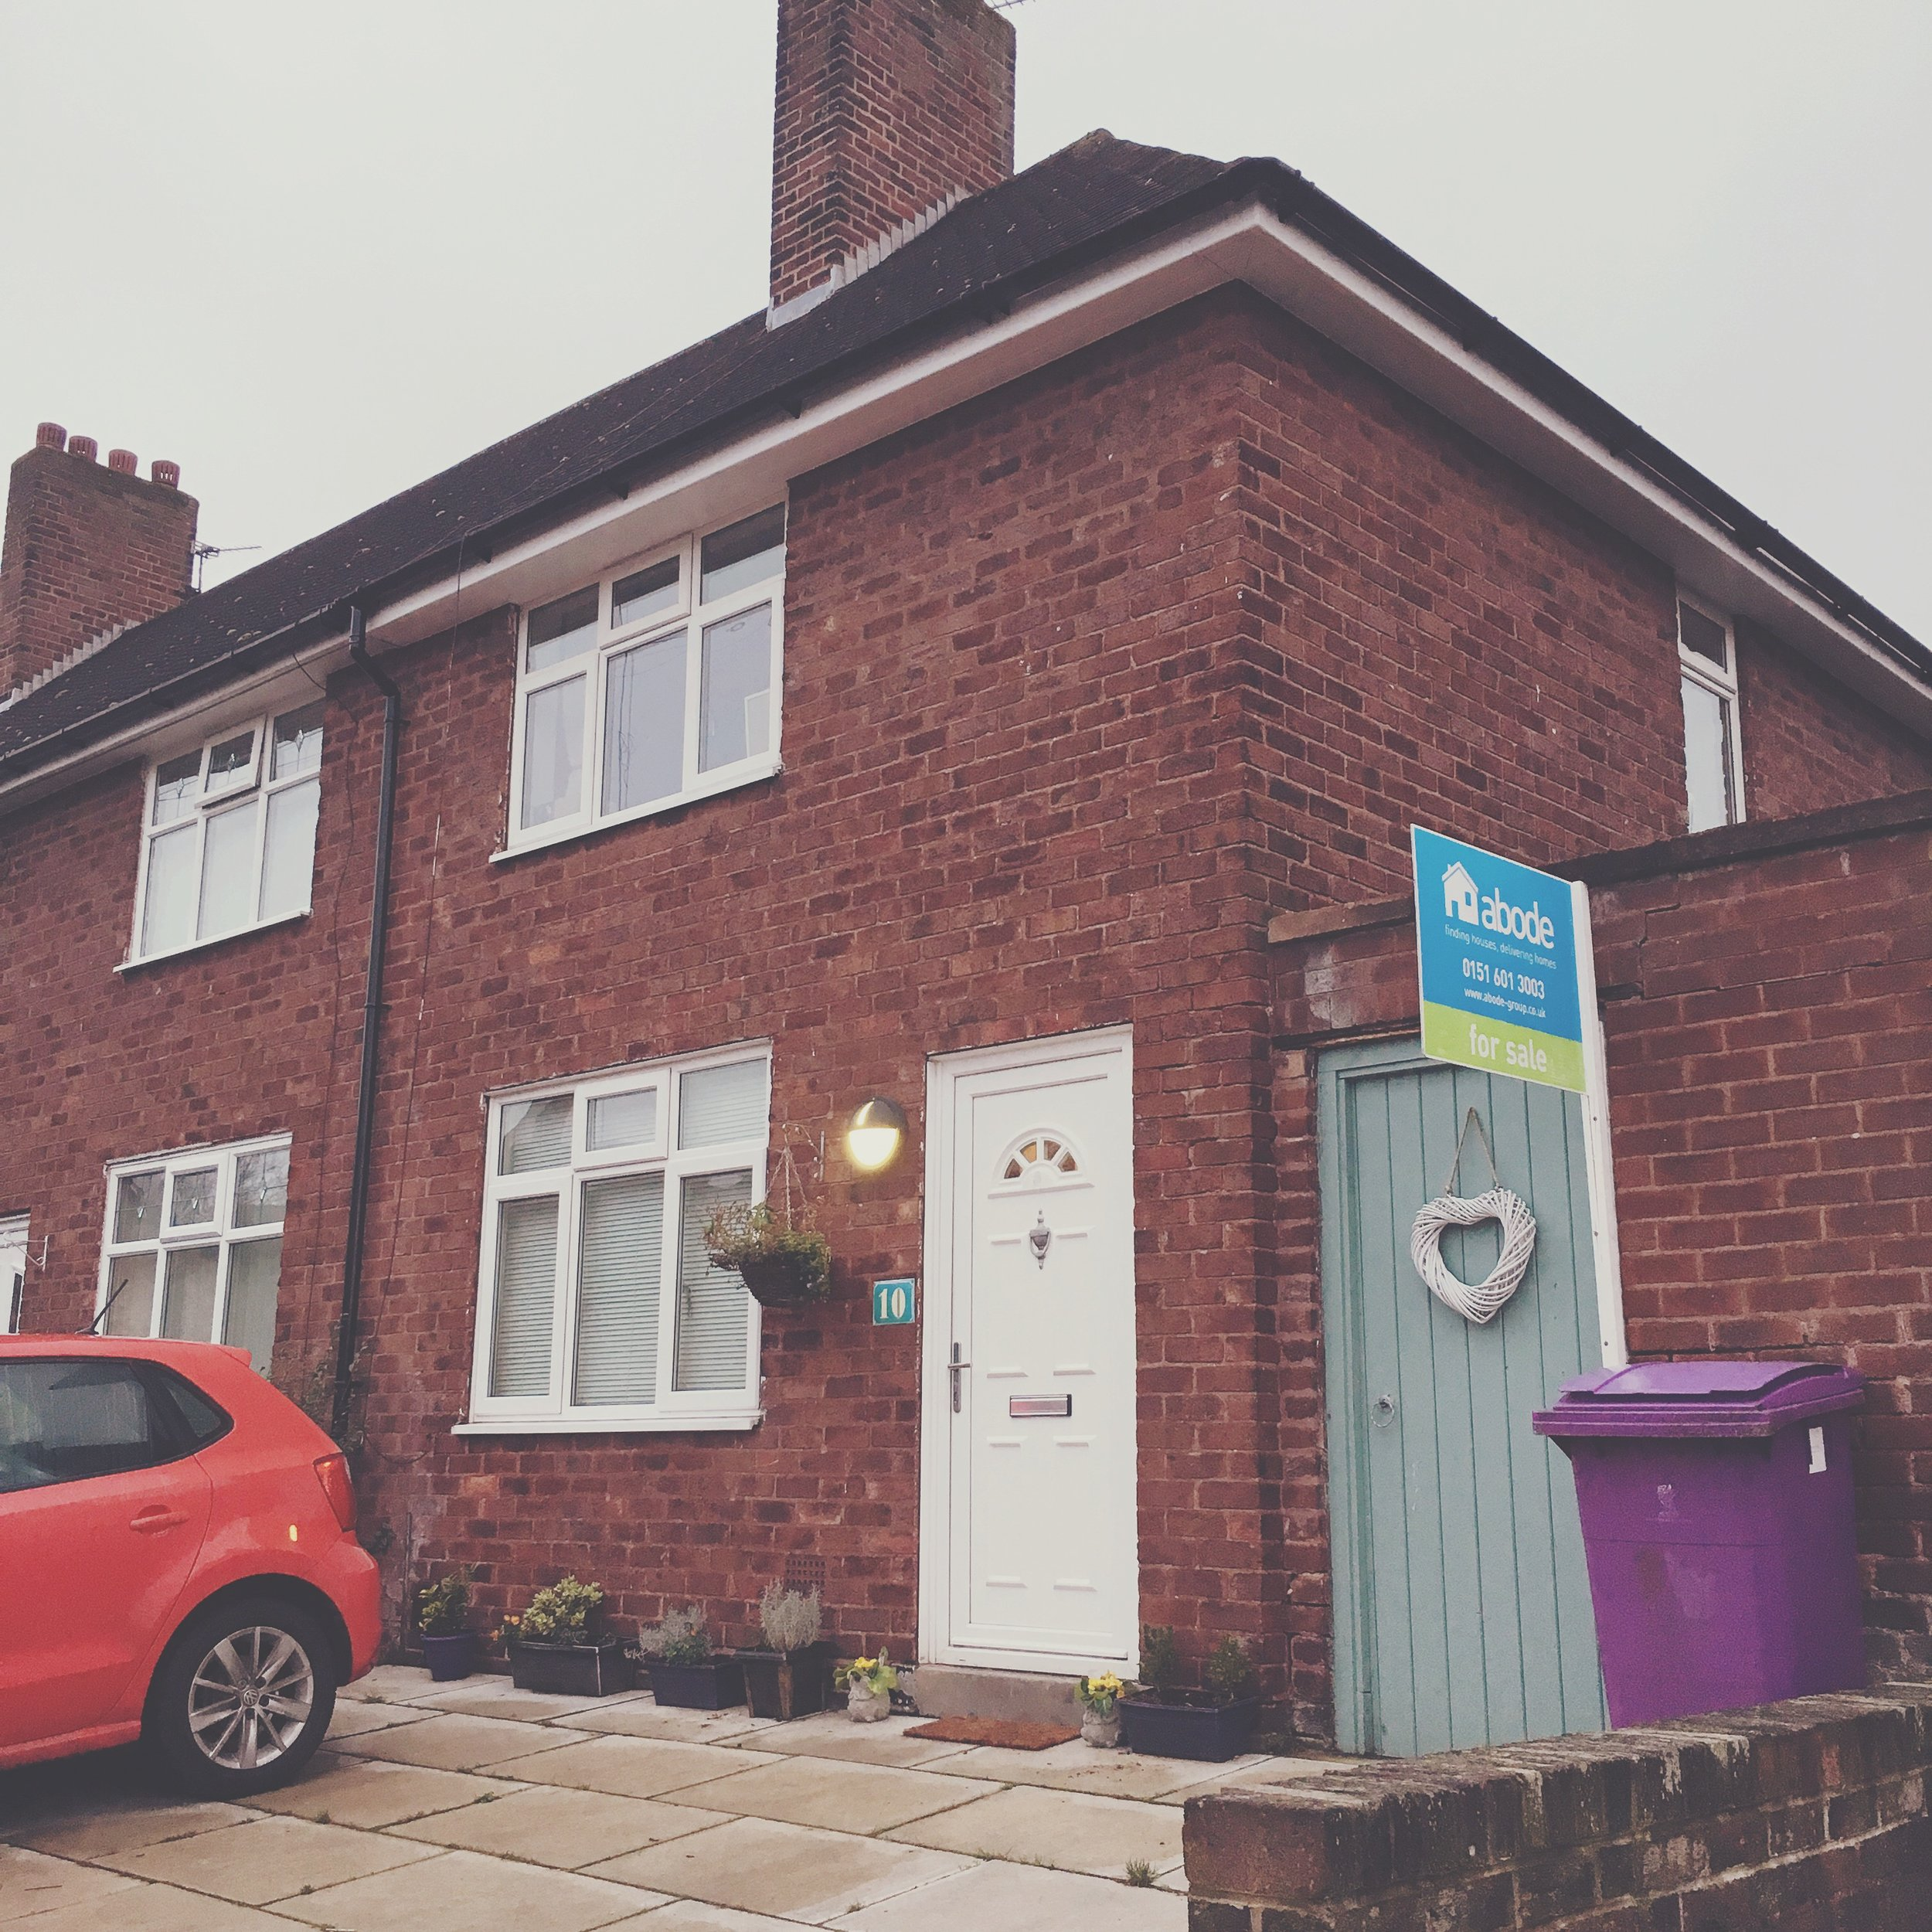 Small two up two down terraced house with for sale sign outside. Duck egg blue door with white wicker heart